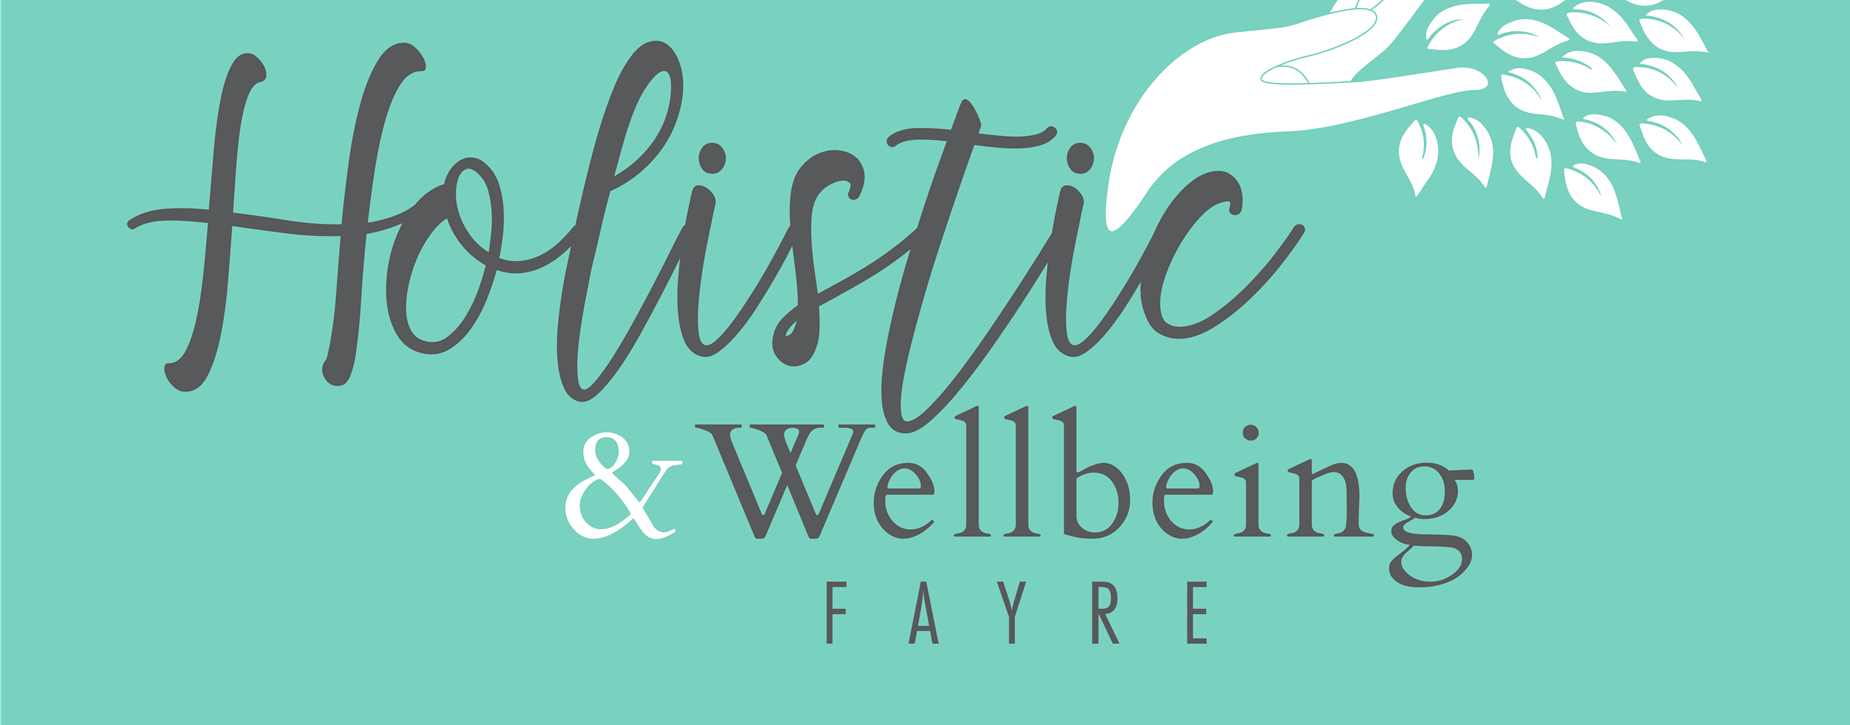 Holistic and Wellbeing Fayre